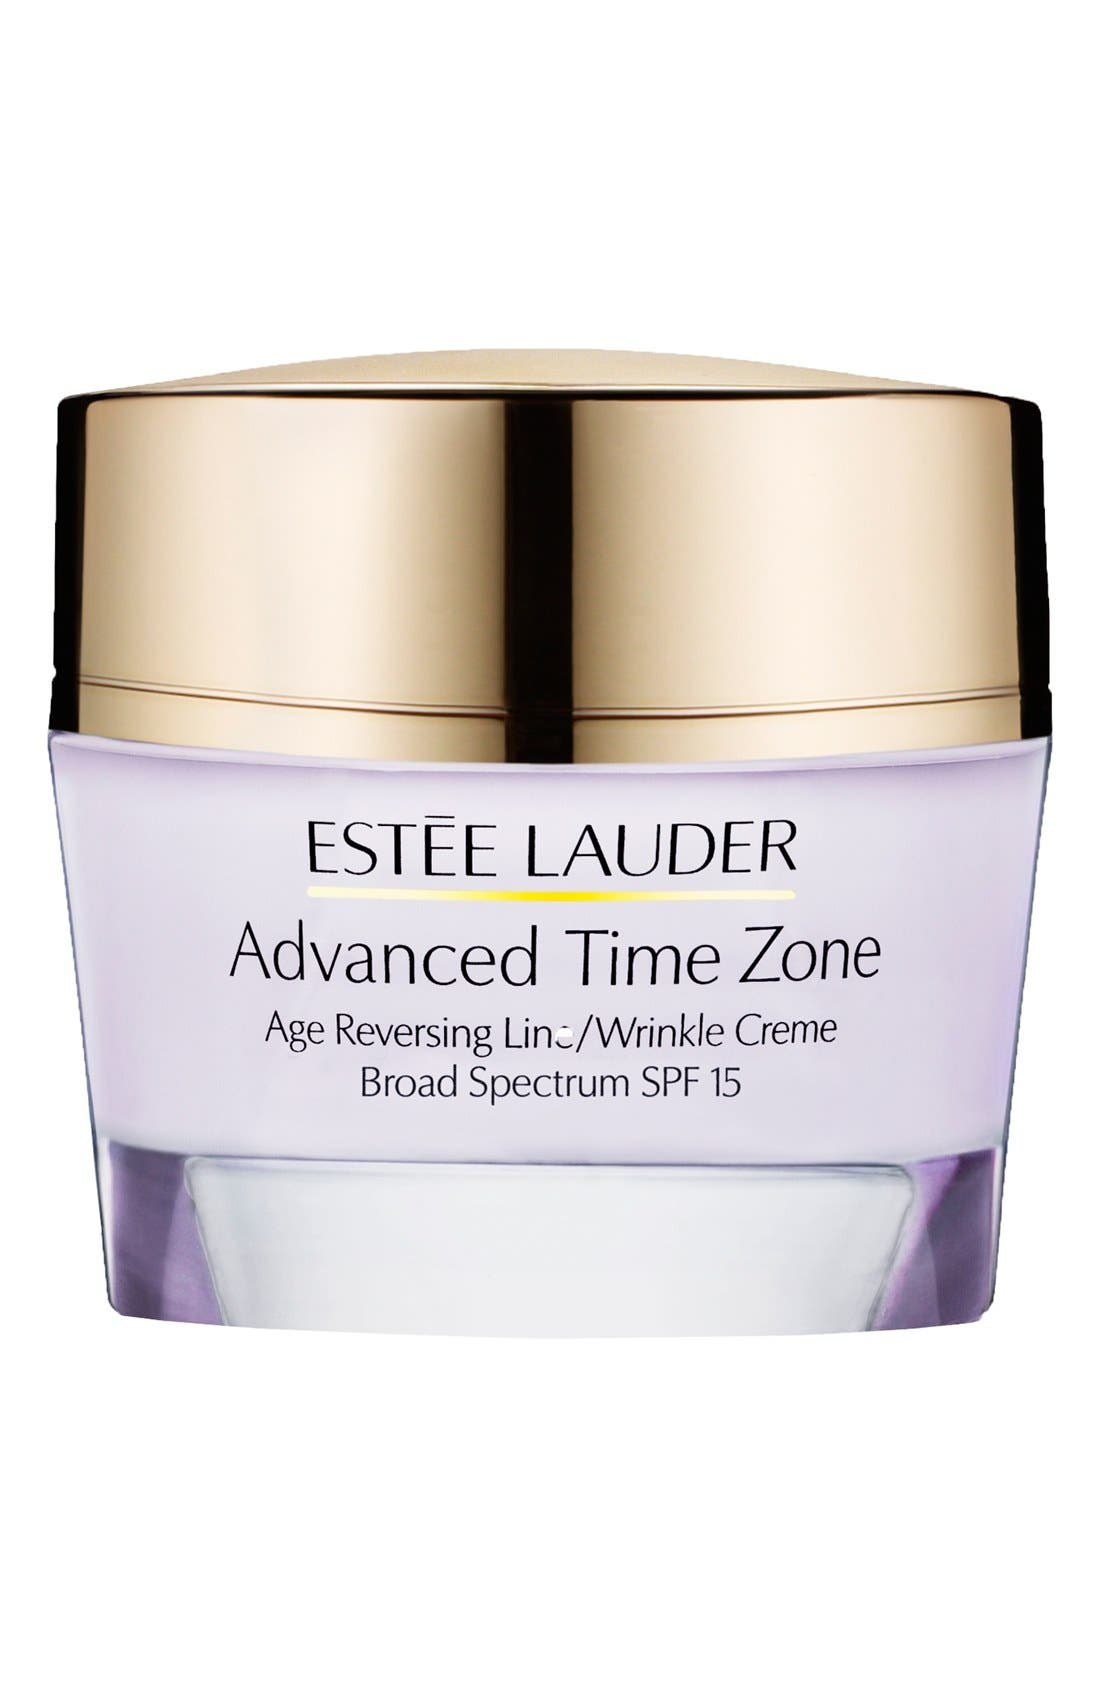 Advanced Time Zone Age Reversing Line/Wrinkle Creme Broad Spectrum SPF 15,                             Main thumbnail 1, color,                             NORMAL COMBINATION